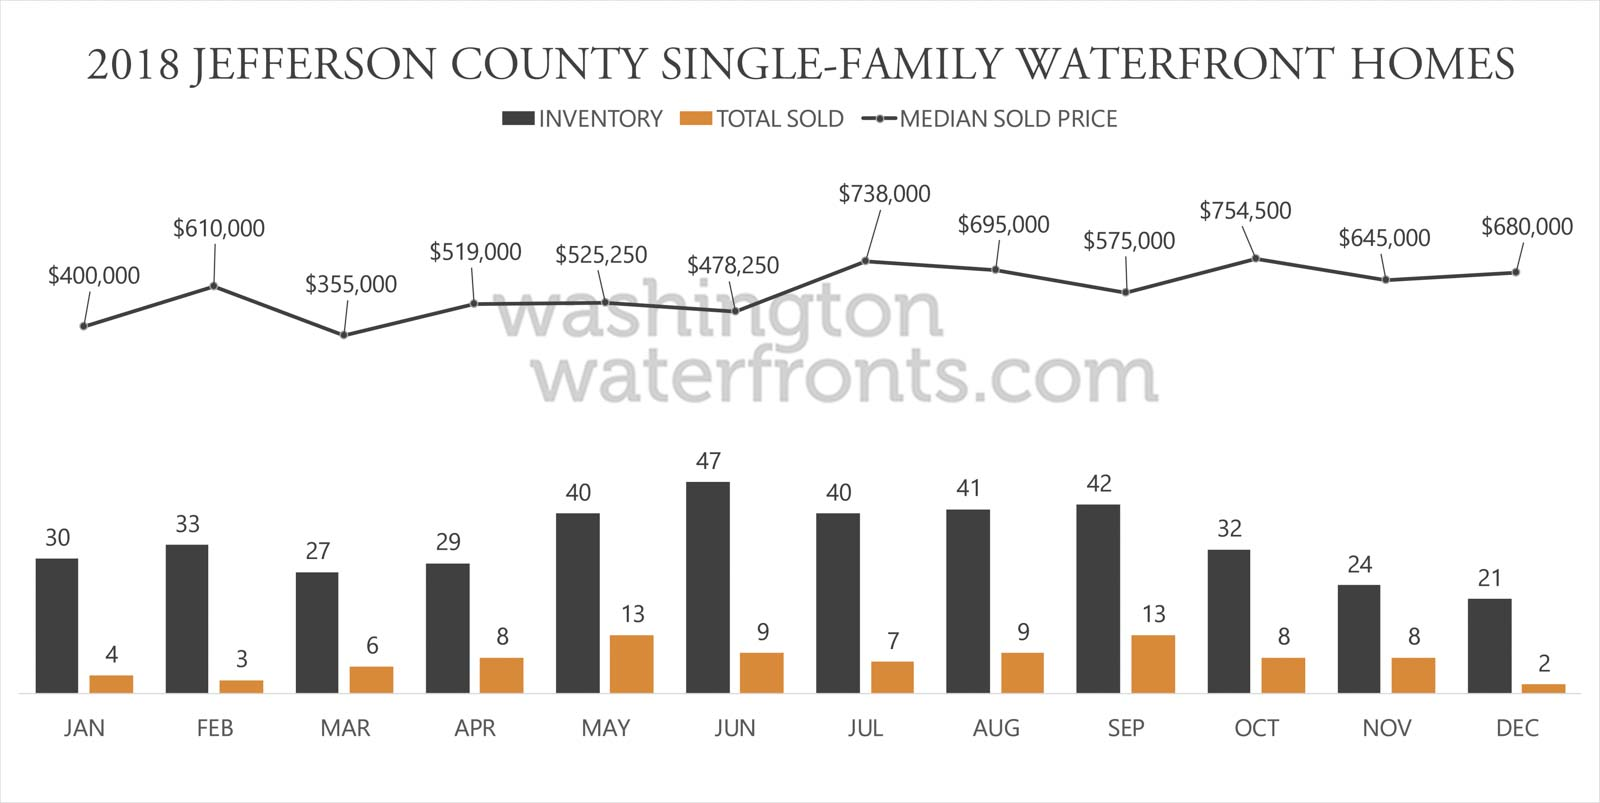 Jefferson County Waterfront Inventory